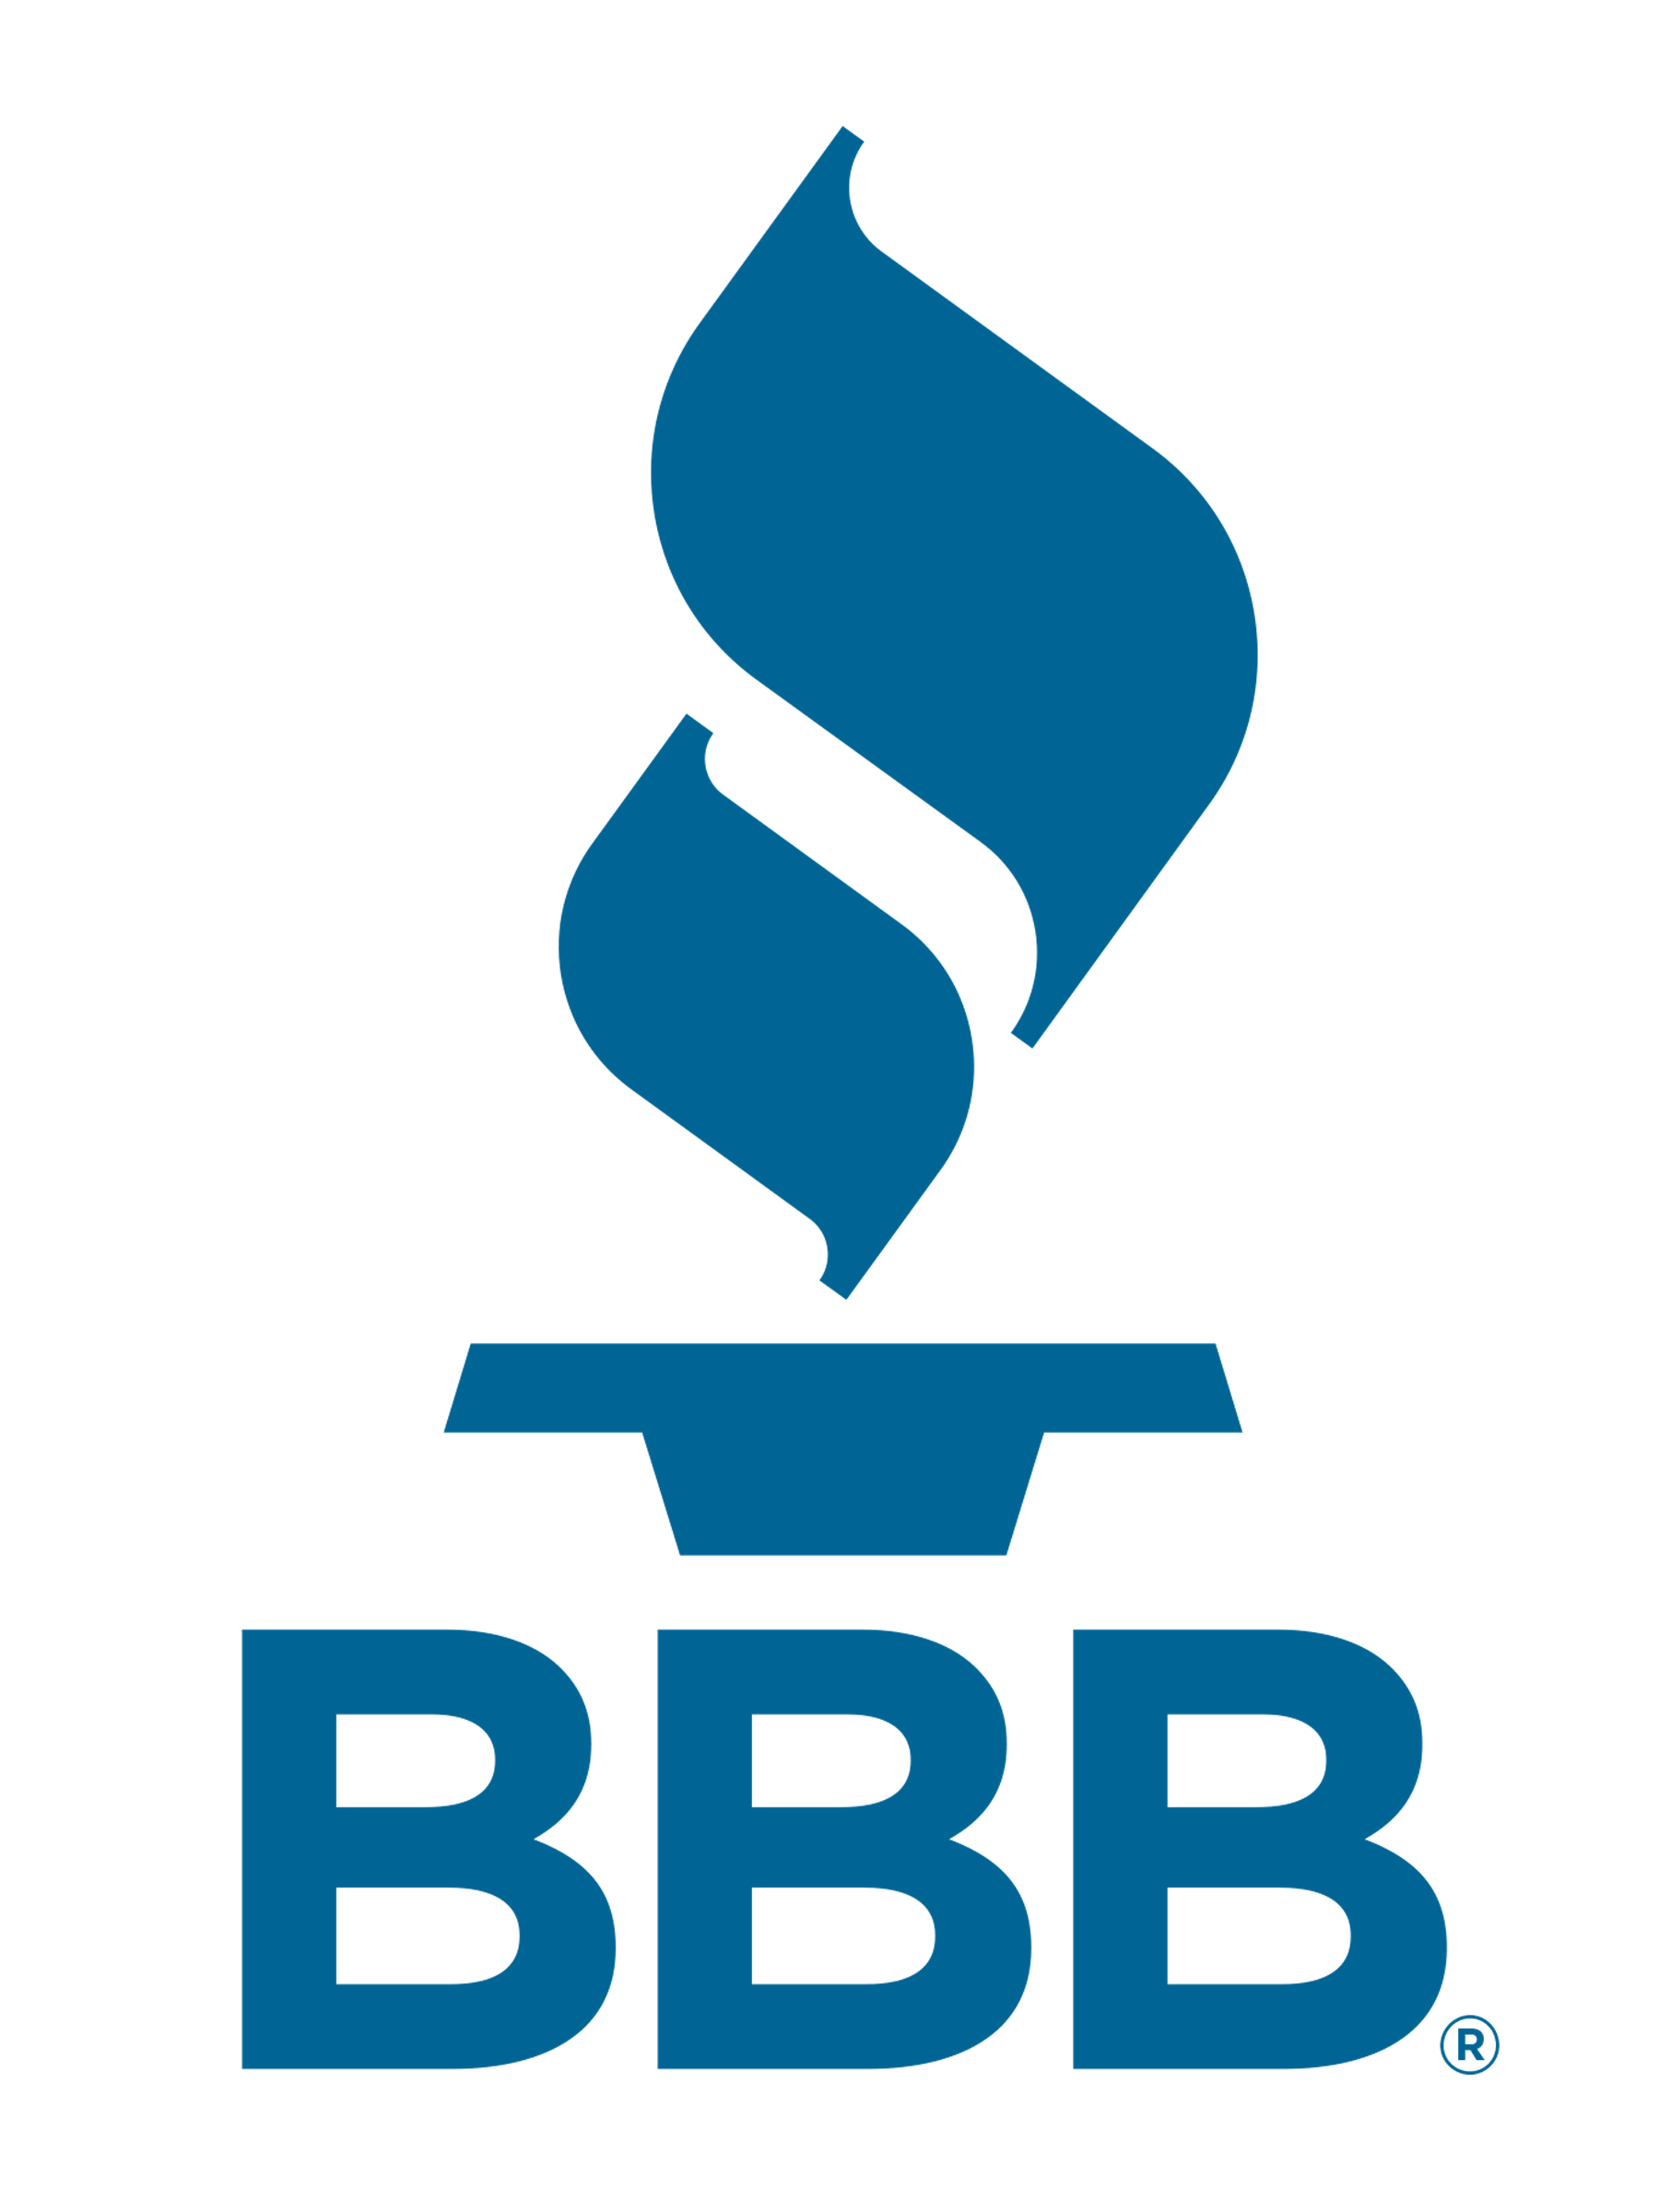 Bbb a  logo png. Index of img bbblogolgpng